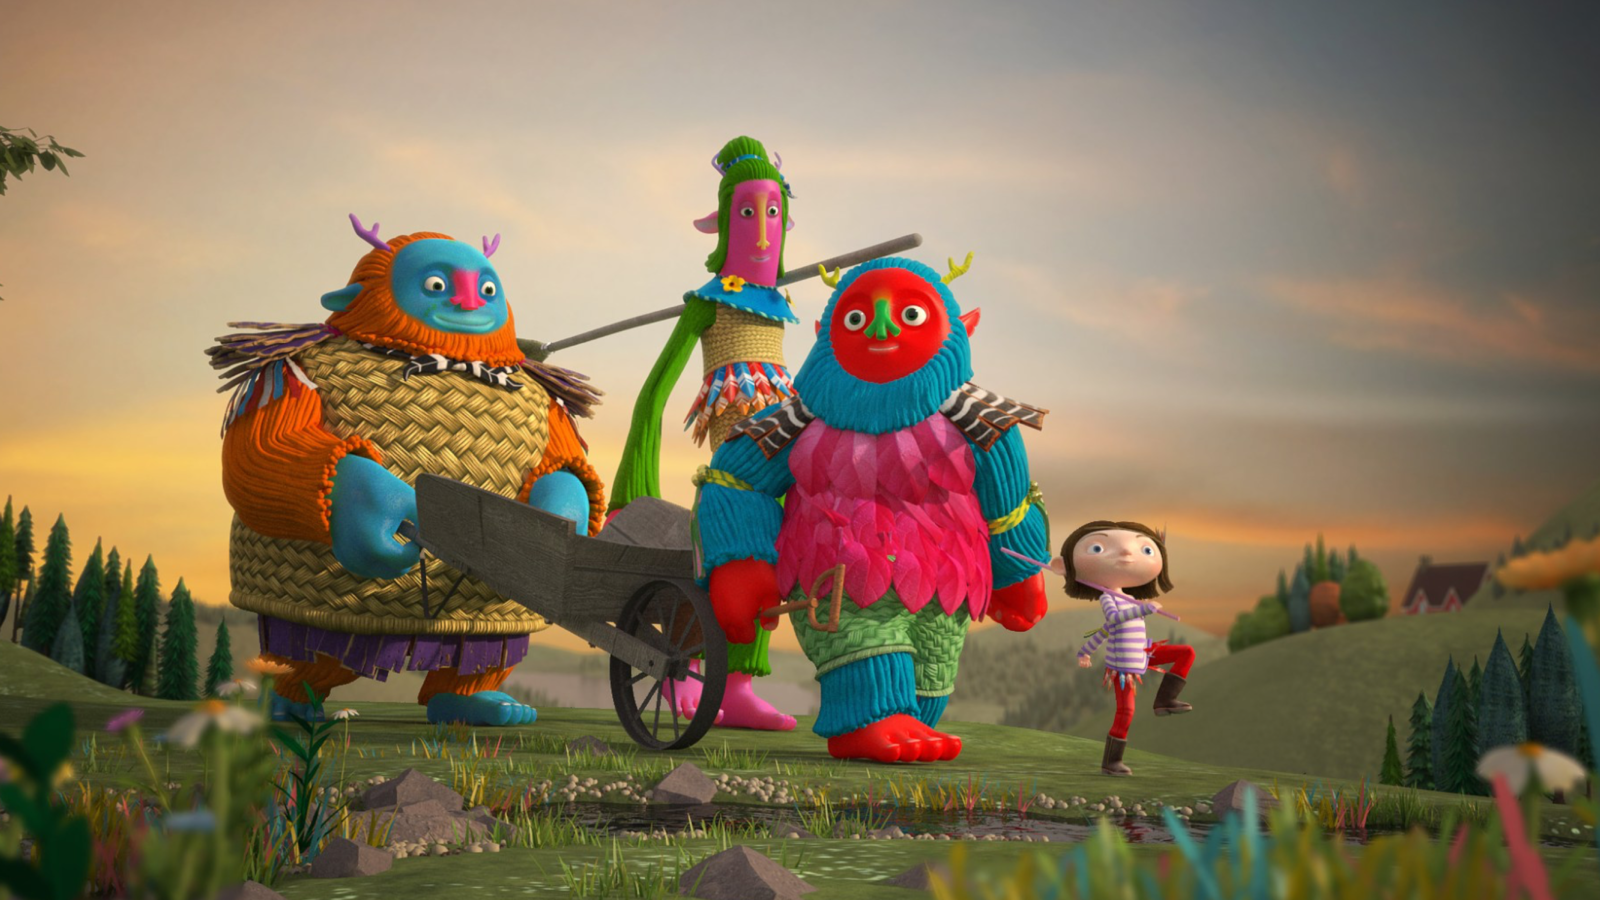 Still from animation trailer, Lila and the Giants, showing 3 giants walking in the country with Lila leading the way